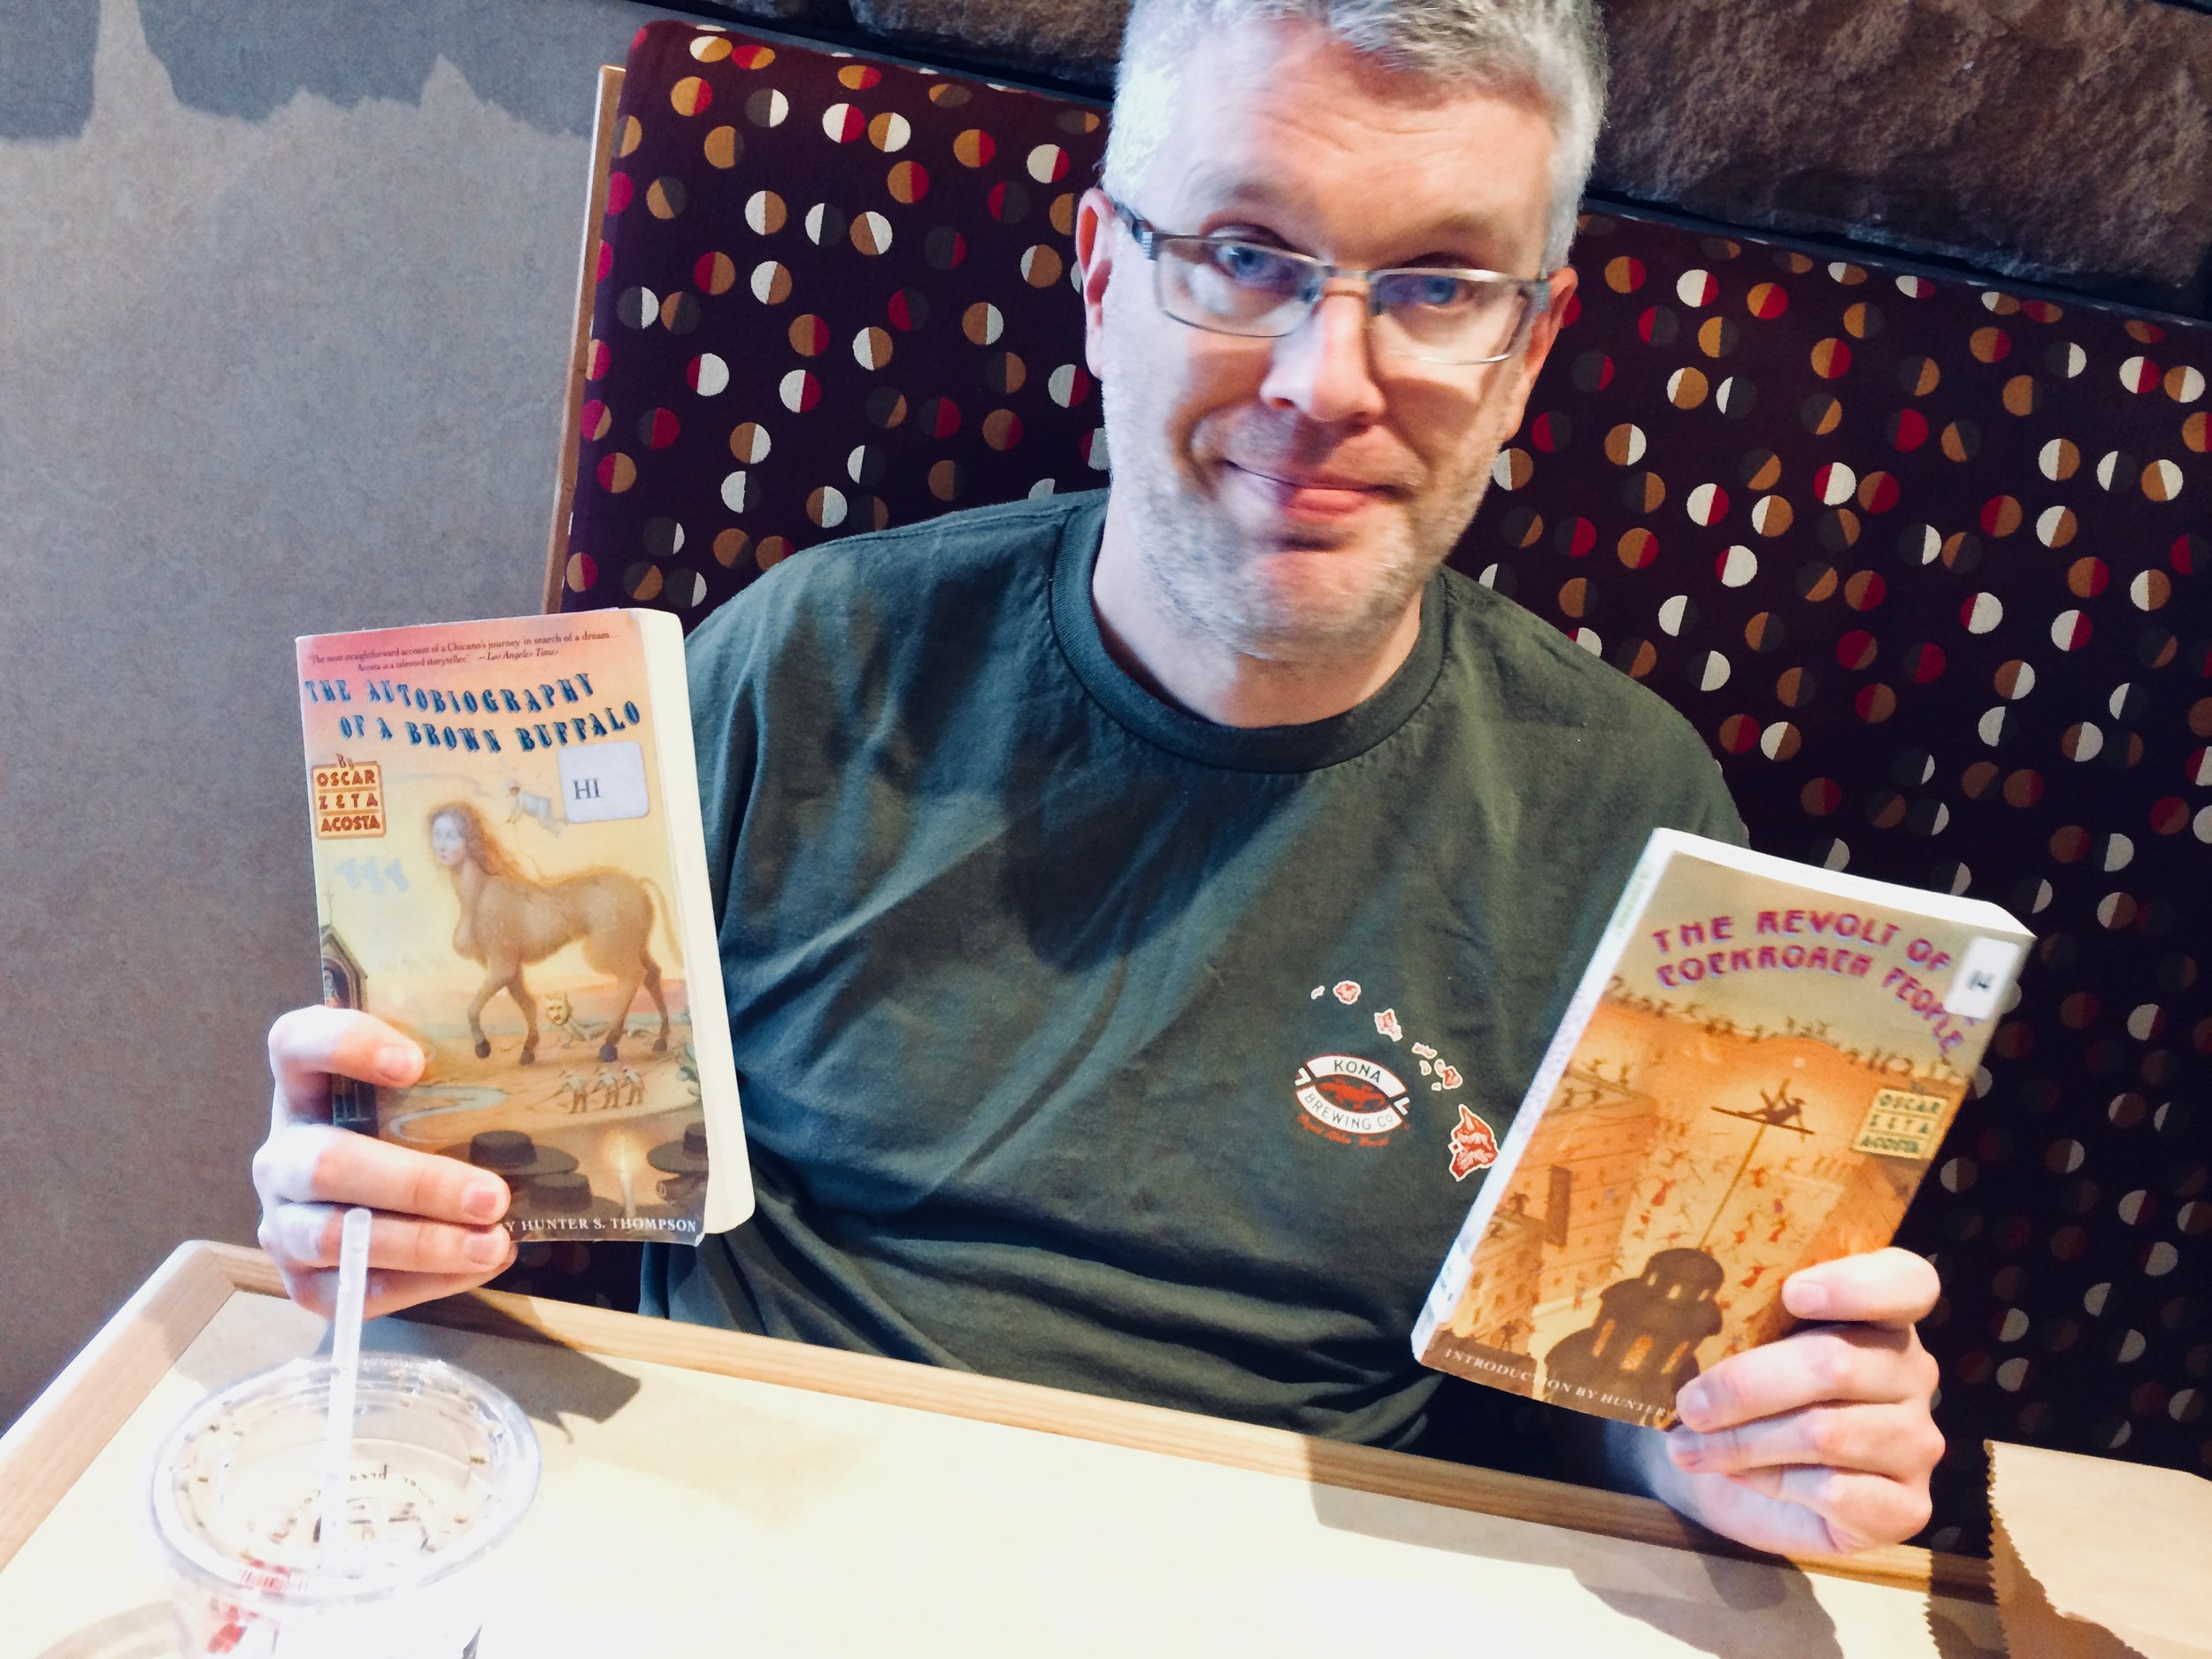 ASU English professor Lee Bebout is a self-proclaimed 'Saltine' who teaches Chicano history and literature. He wants students and others to learn the unknown history of American Latino literature - which he insists should always include Oscar Zeta Acosta.